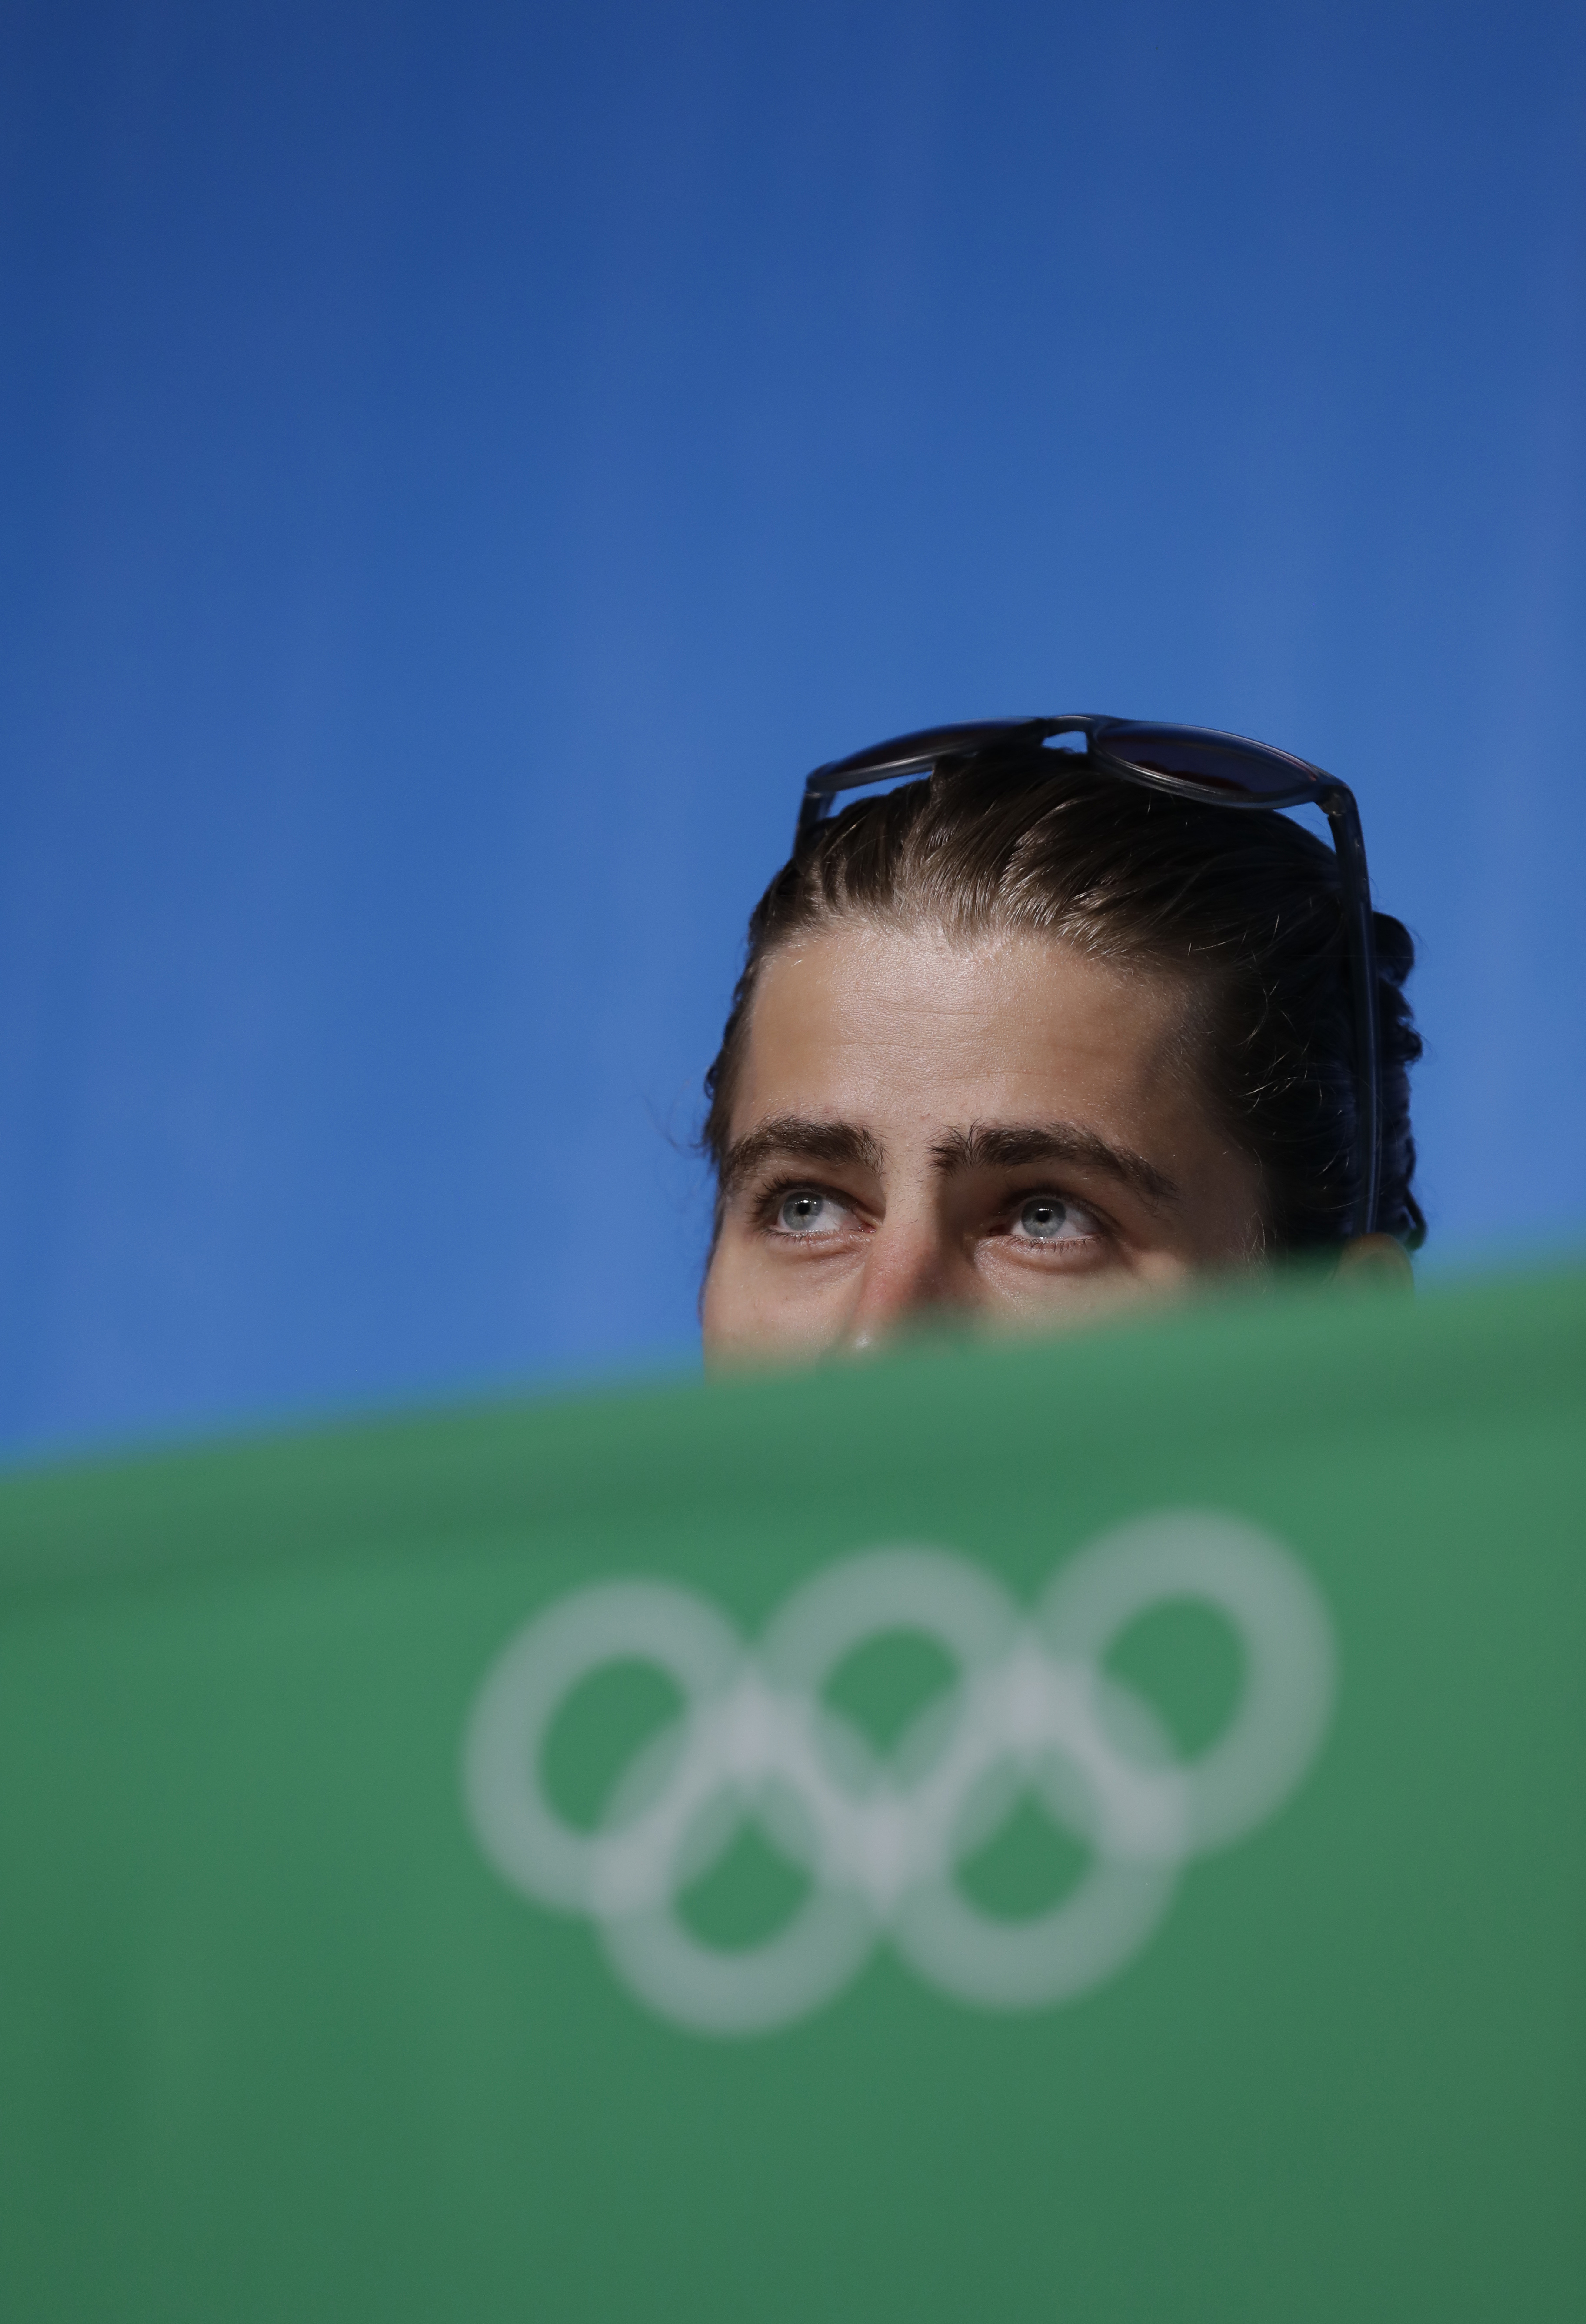 Slovakian cyclist Peter Sagan talks to journalists during a press conference he held at the 2016 Summer Olympics in Rio de Janeiro, Brazil, Tuesday, Aug. 16, 2016. (AP Photo/Andrew Medichini)